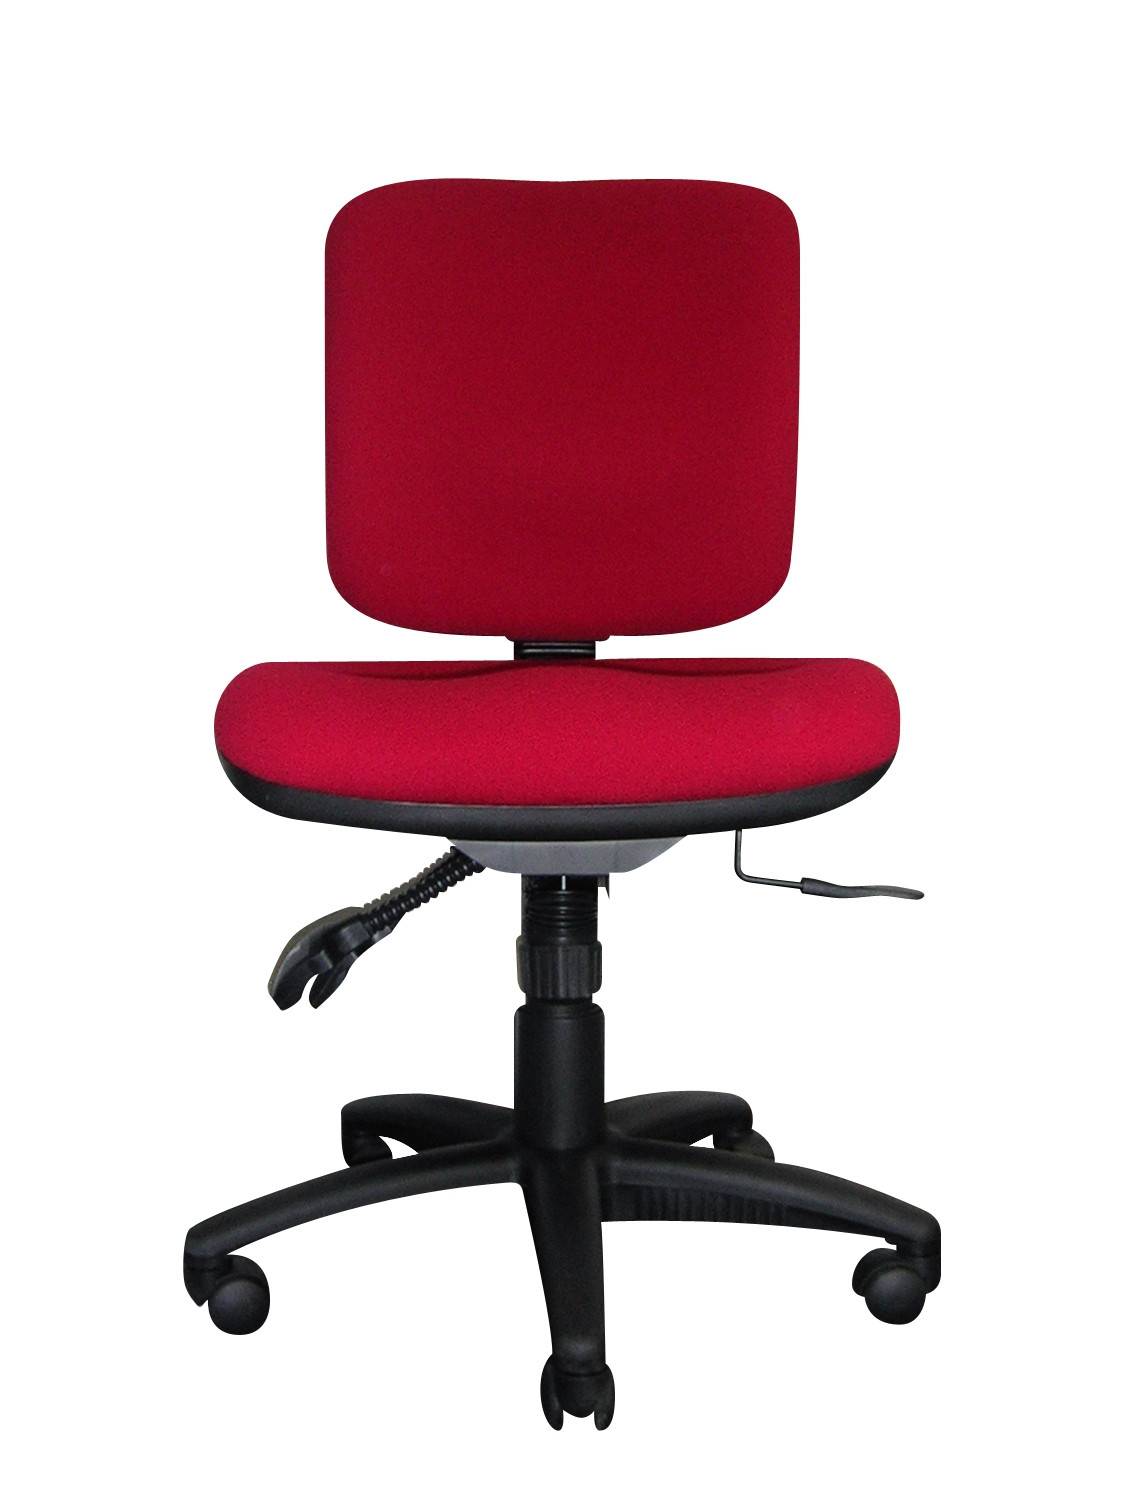 MAXX CHAIR